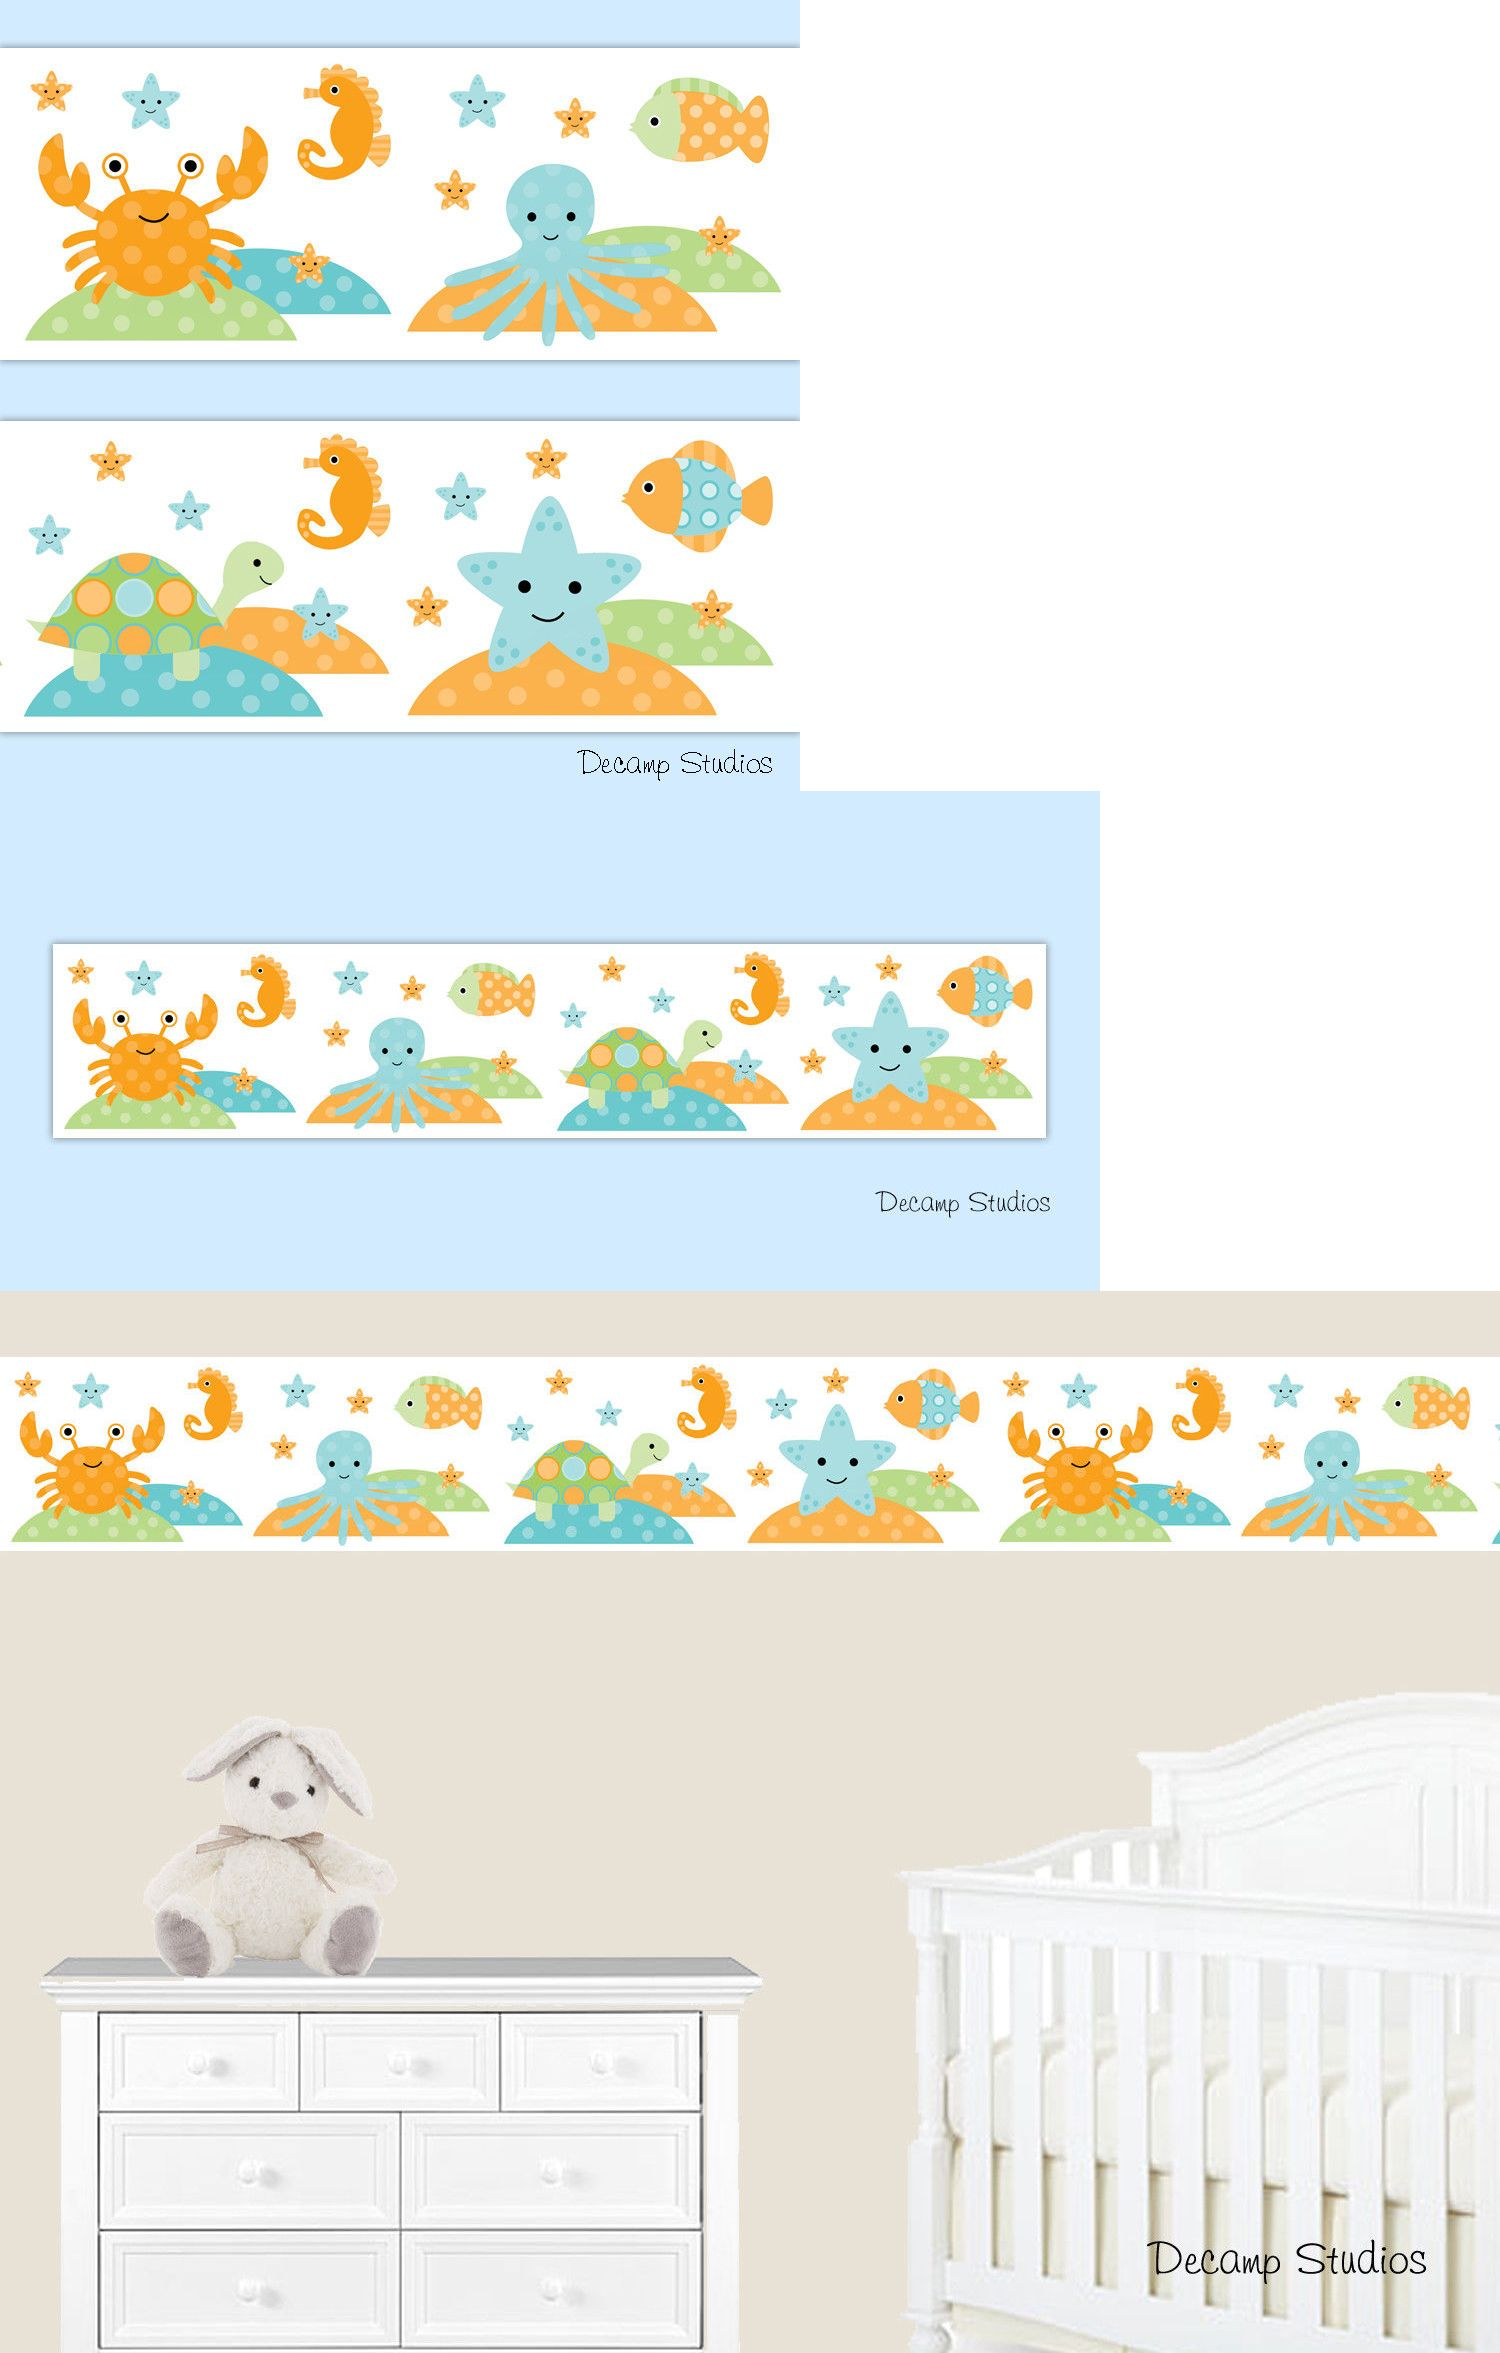 Wallpaper Borders 37636 Sea Life Nursery Decal Baby Border Wall Art Stickers Ocean Animals